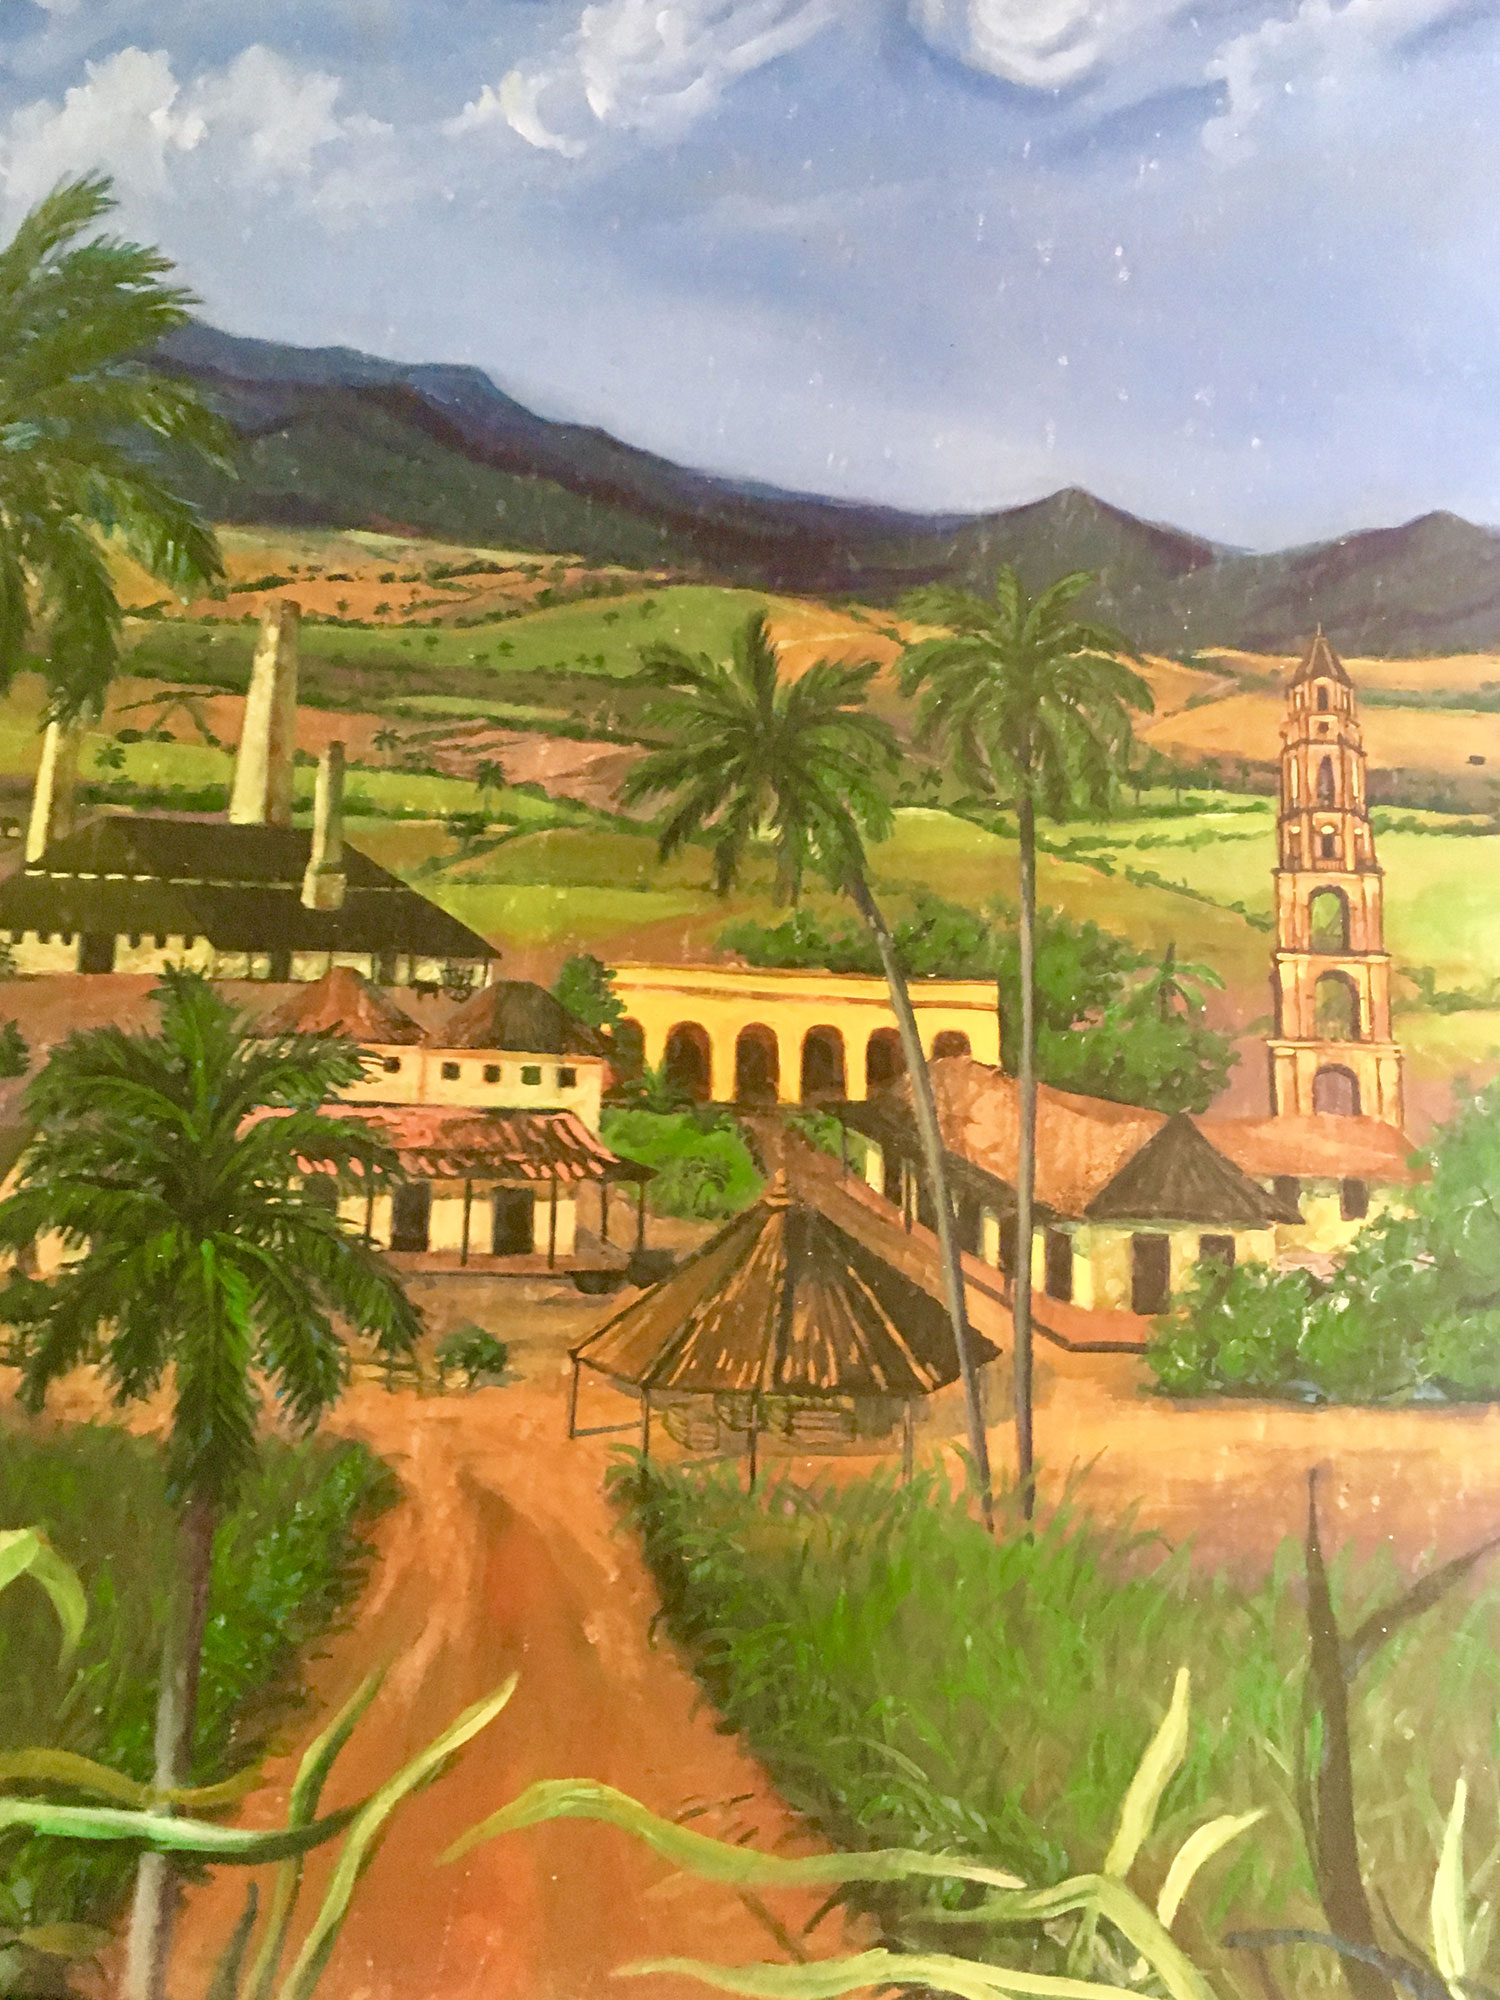 A painting of the hacienda, from the hacienda.